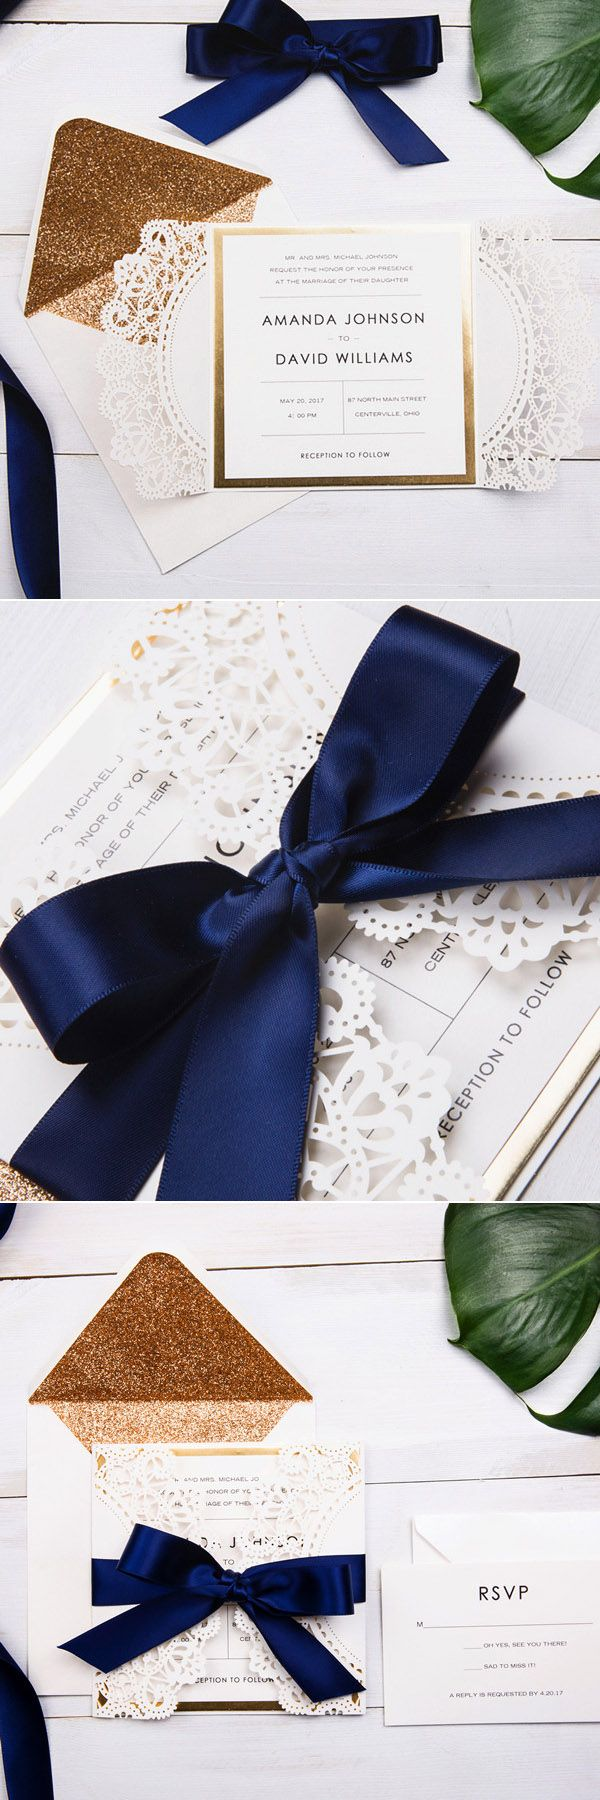 tie ribbon wedding invitation%0A Luxury pearl white laser cut wedding invitations with navy ribbons and  glitter mirror paper